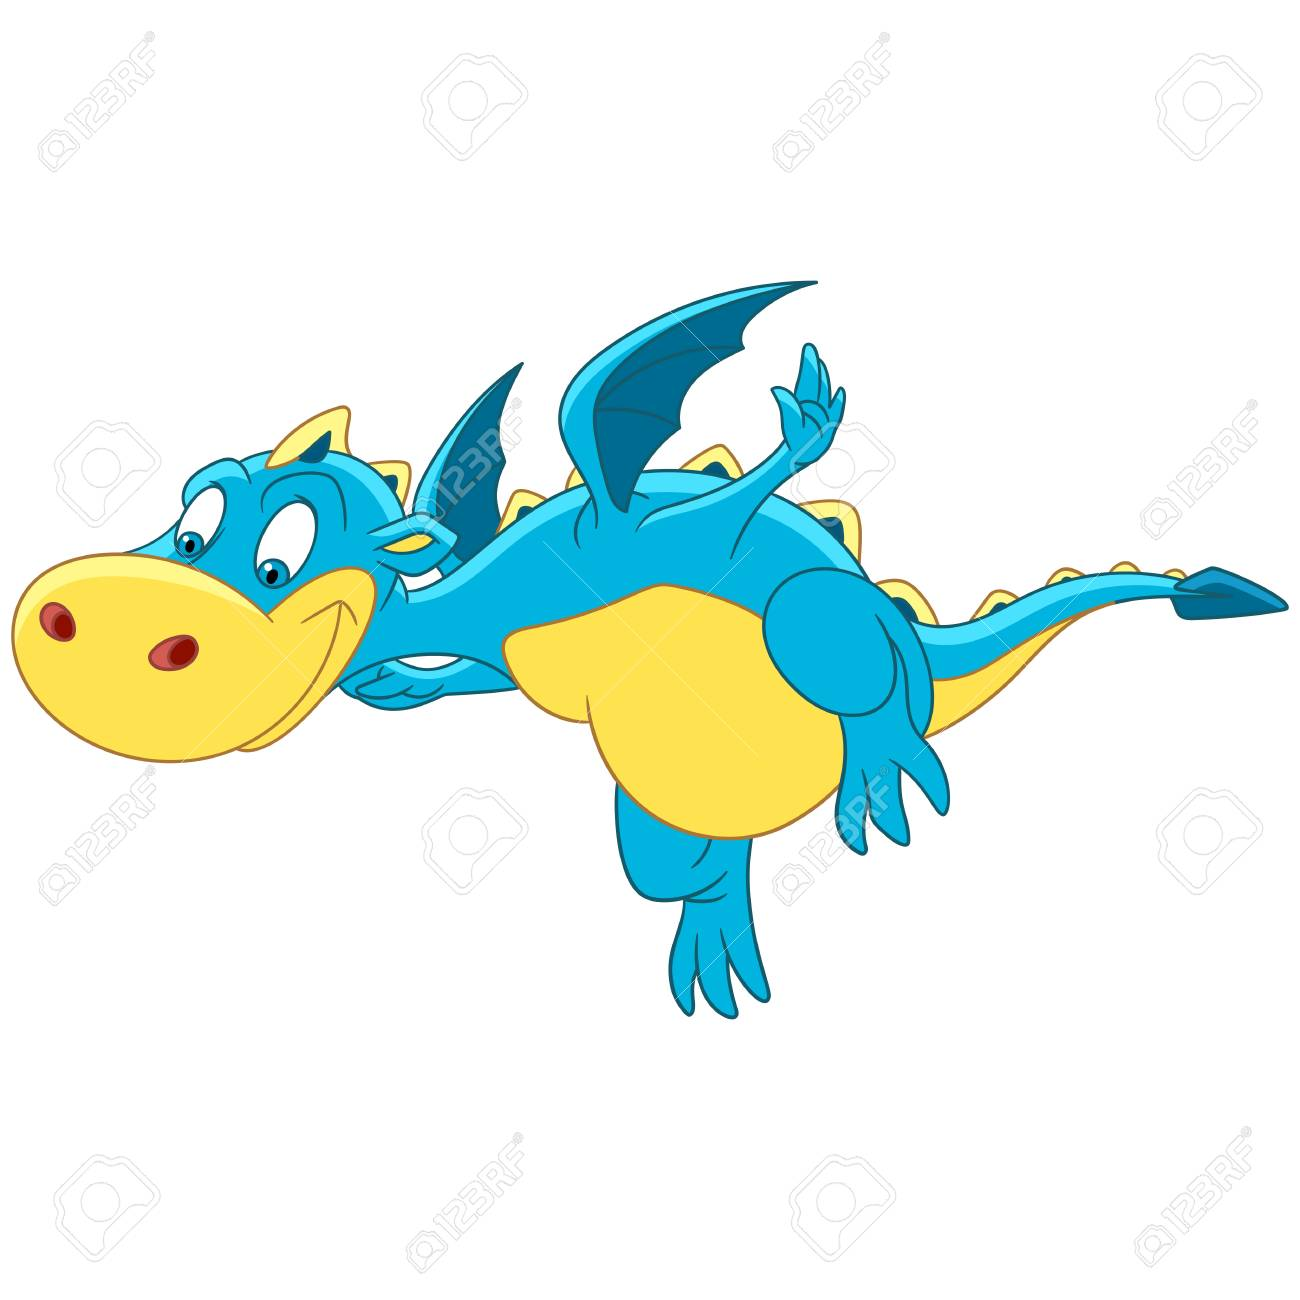 Cartoon Dragon Flying Isolated On White Background Colorful